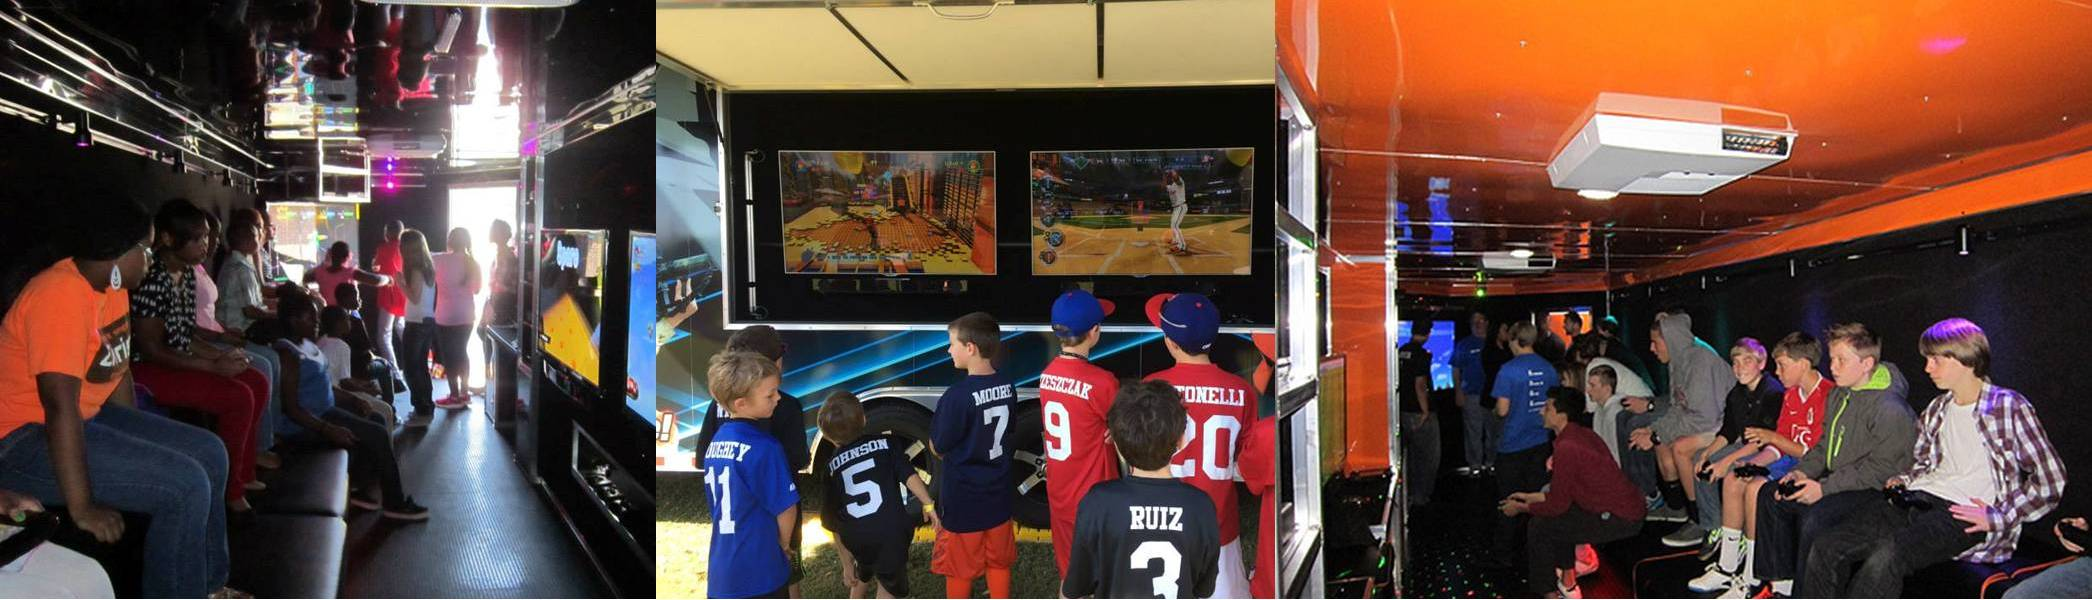 Video game truck parties in Greenville and Pitt County North Carolina